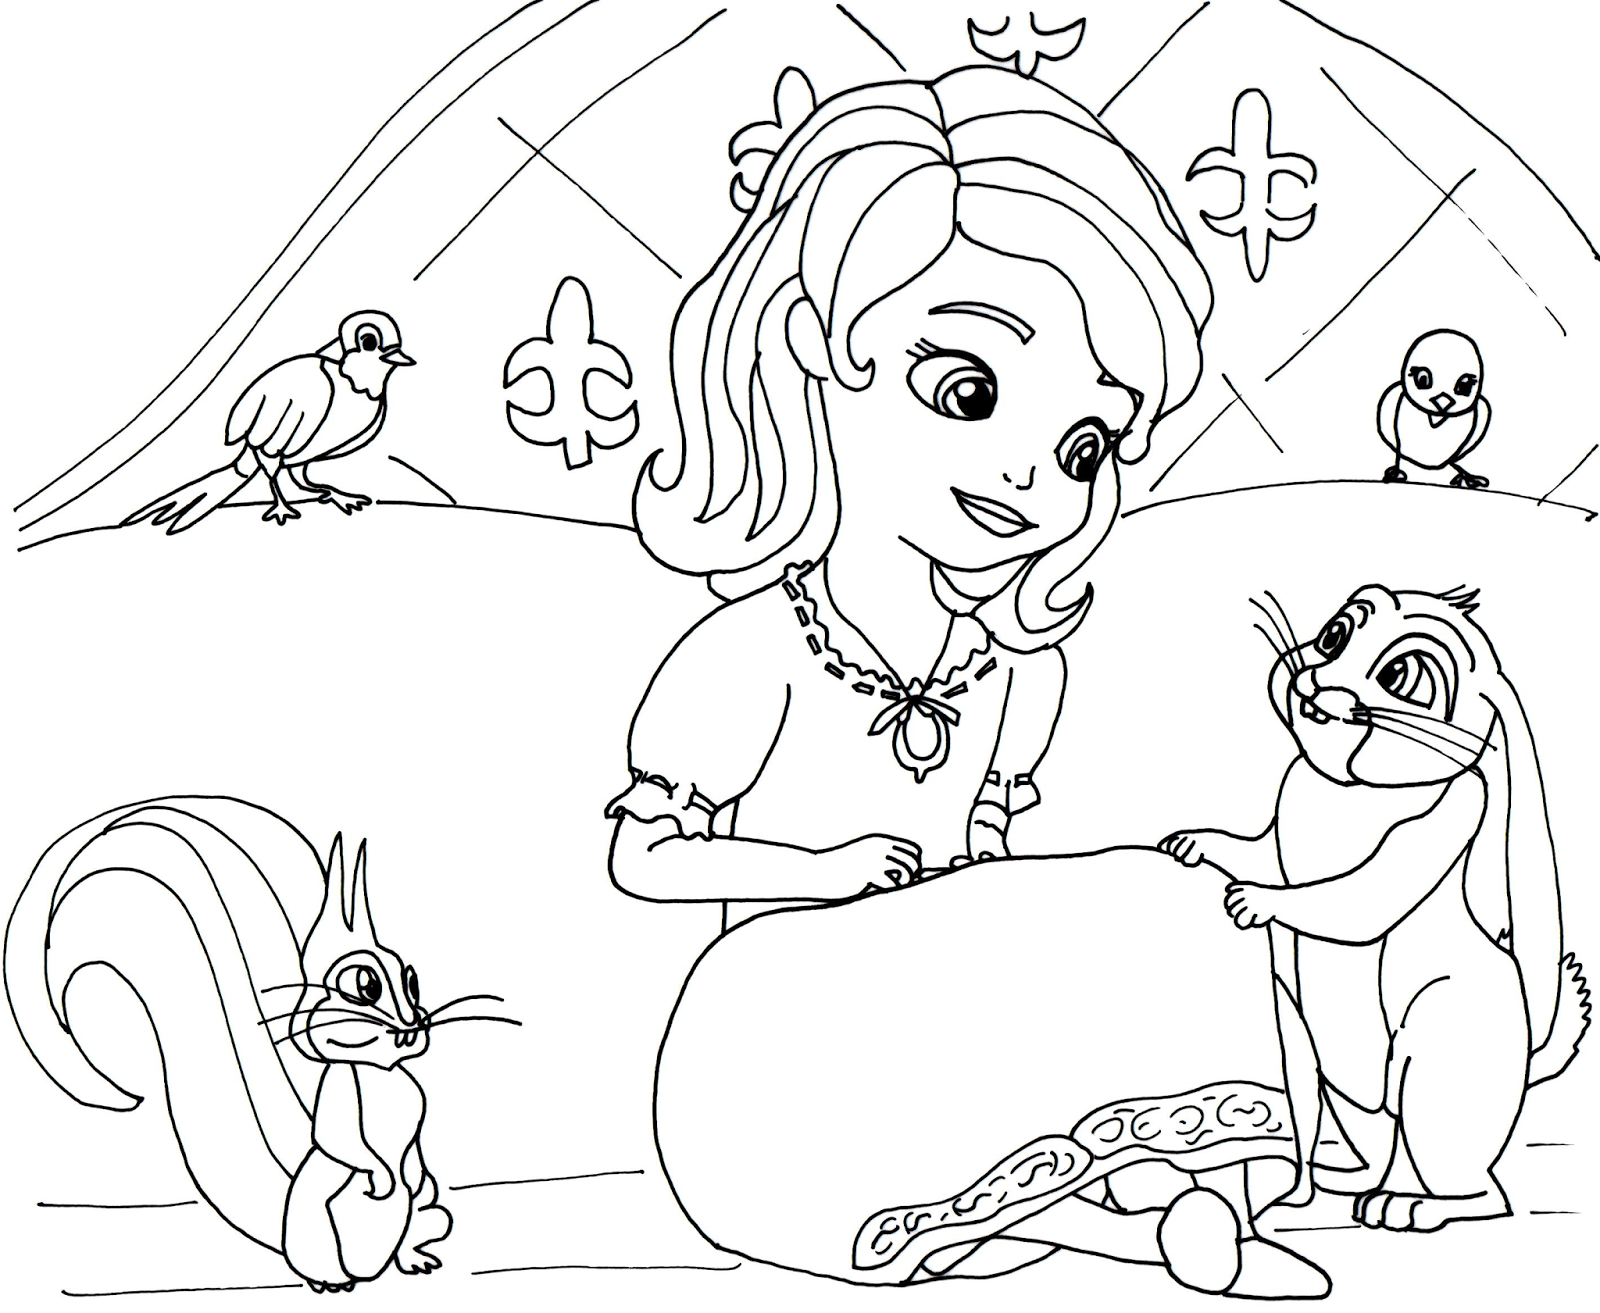 Sofia Coloring Pages Sofia First Coloring Pages Princess Coloring Pages Disney Princess Coloring Pages Mermaid Coloring Pages